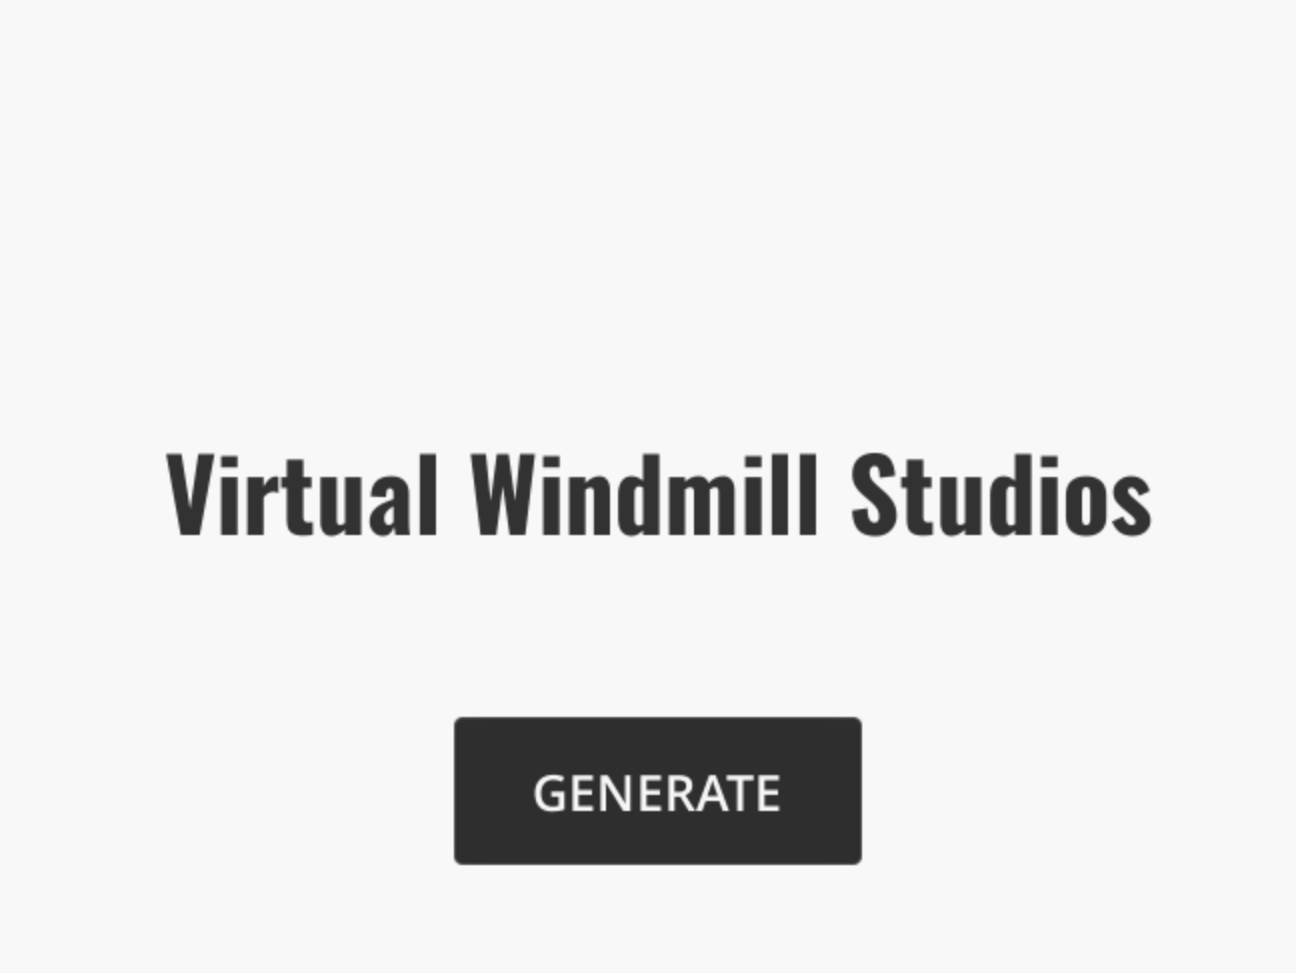 Tool: Video Game Studio Name Generator